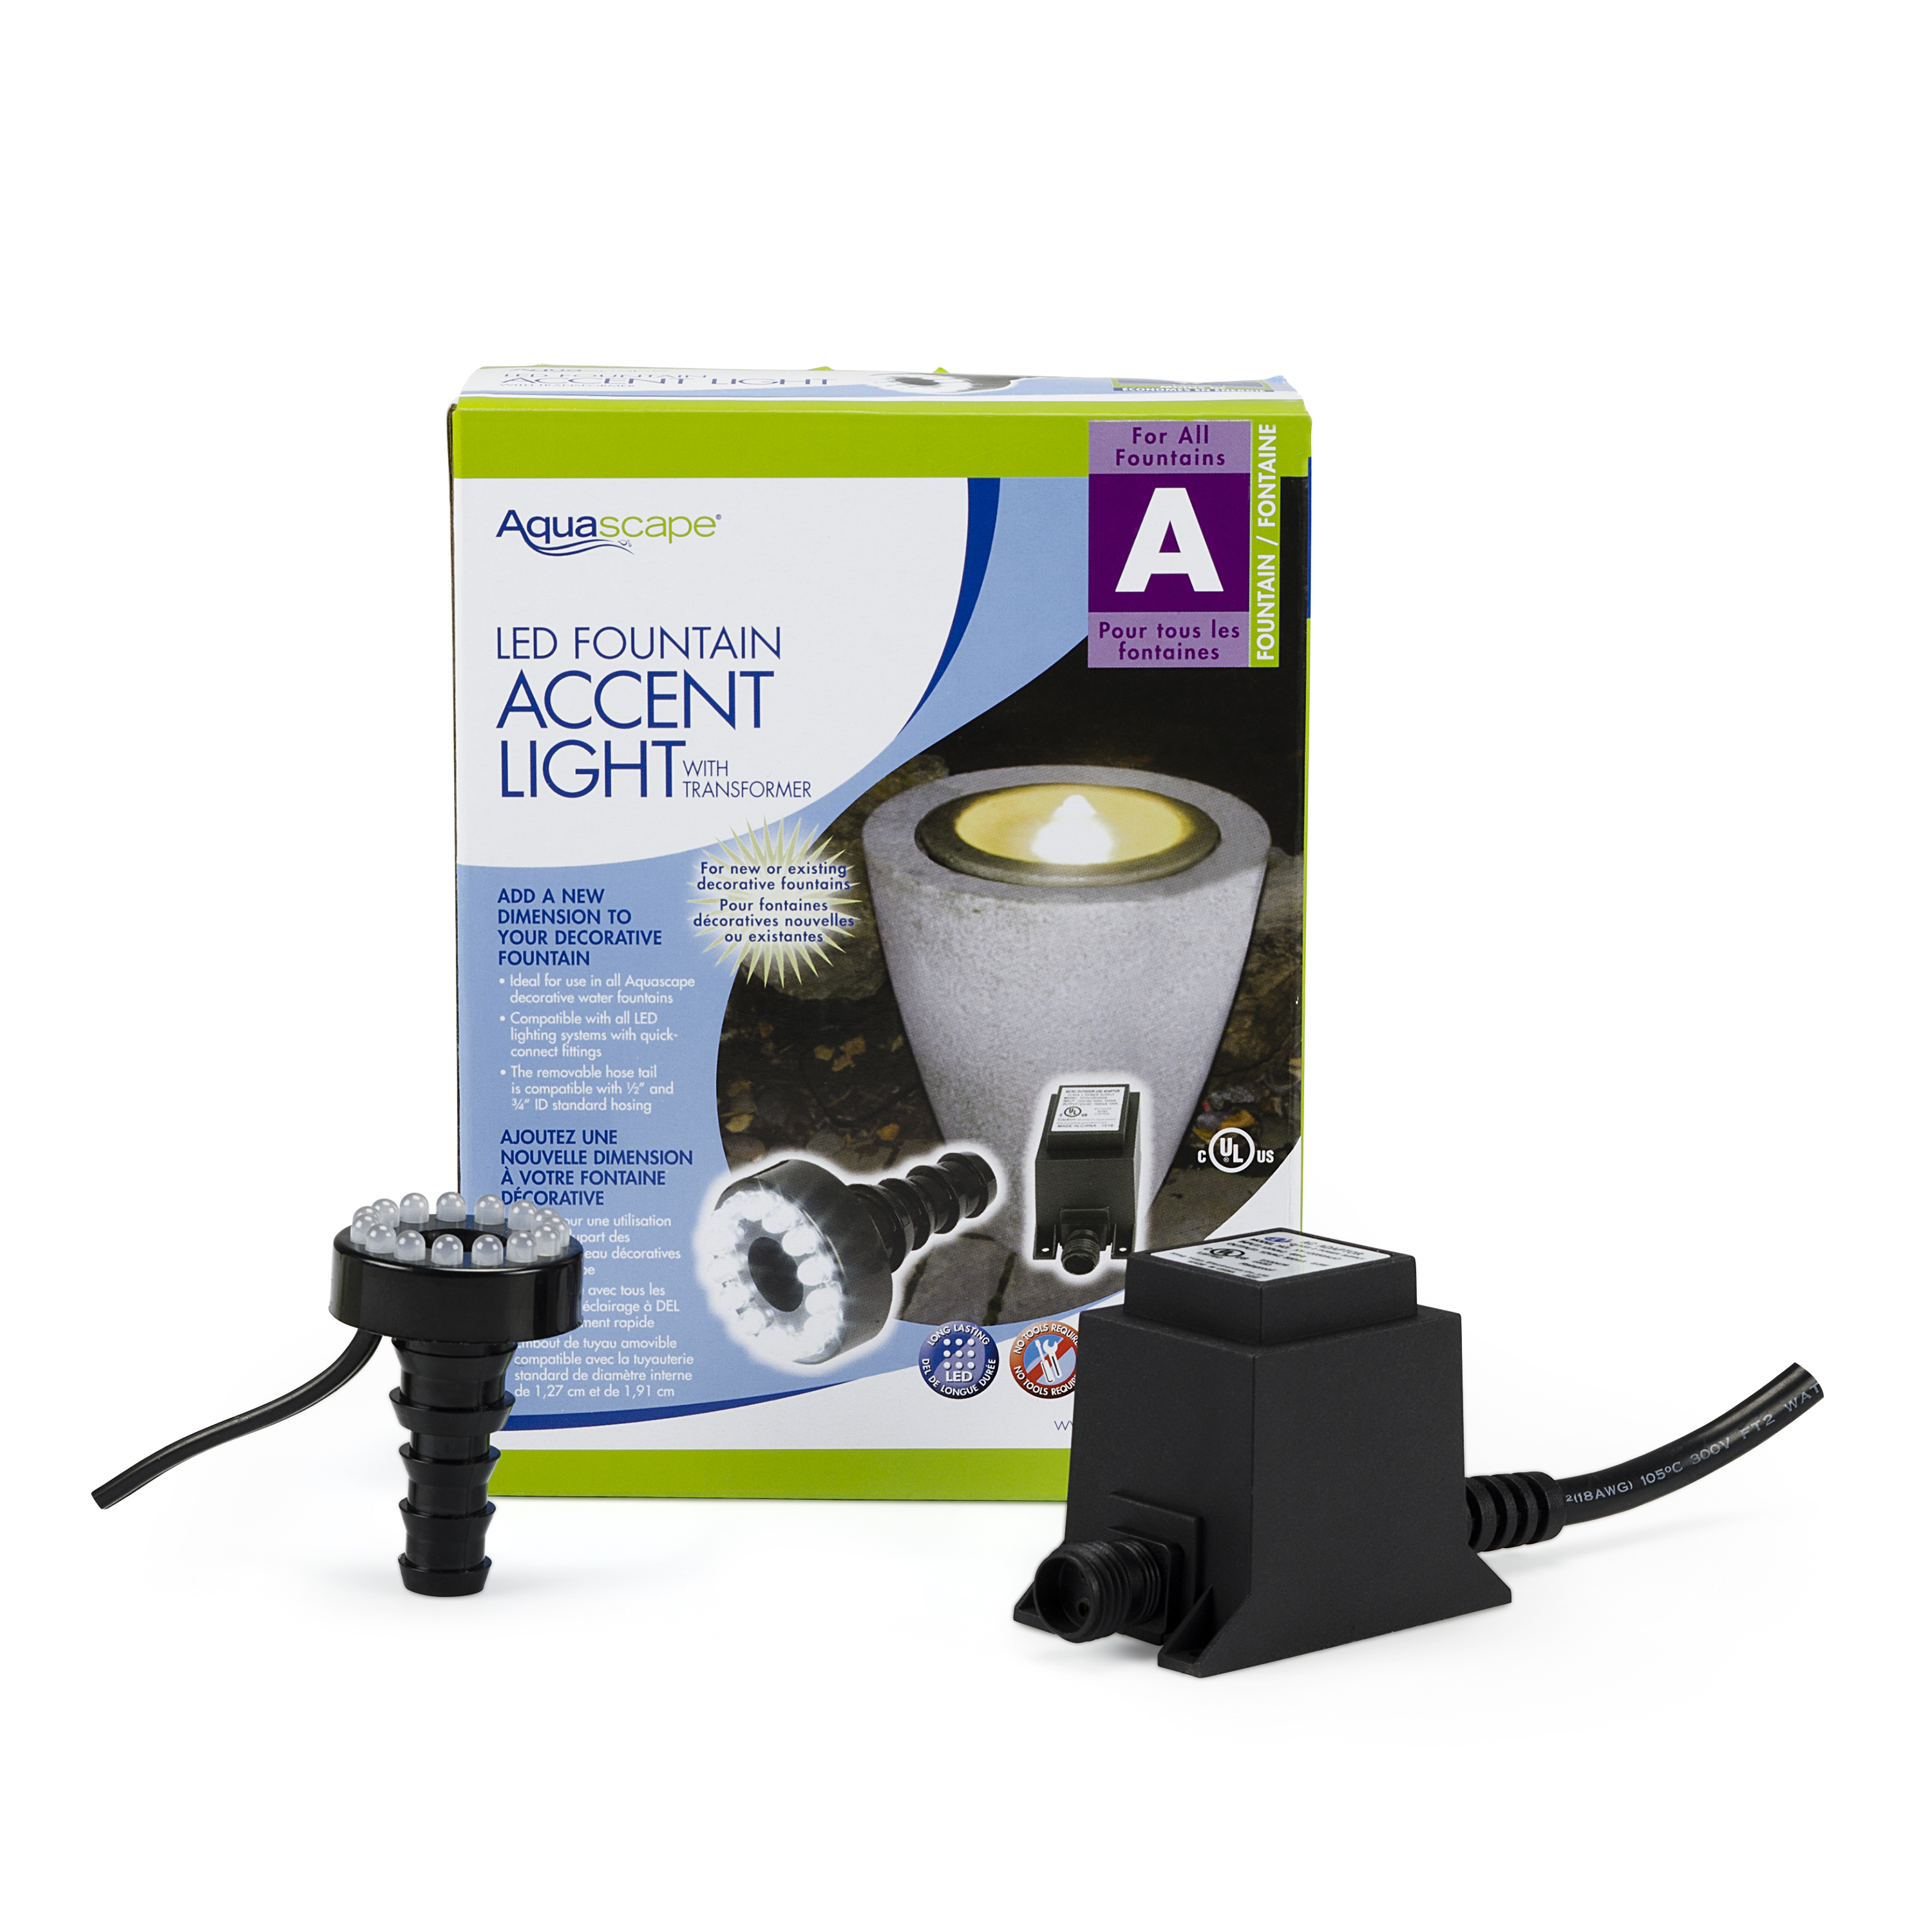 aquascape led fountain accent light with transformer – aquascapes